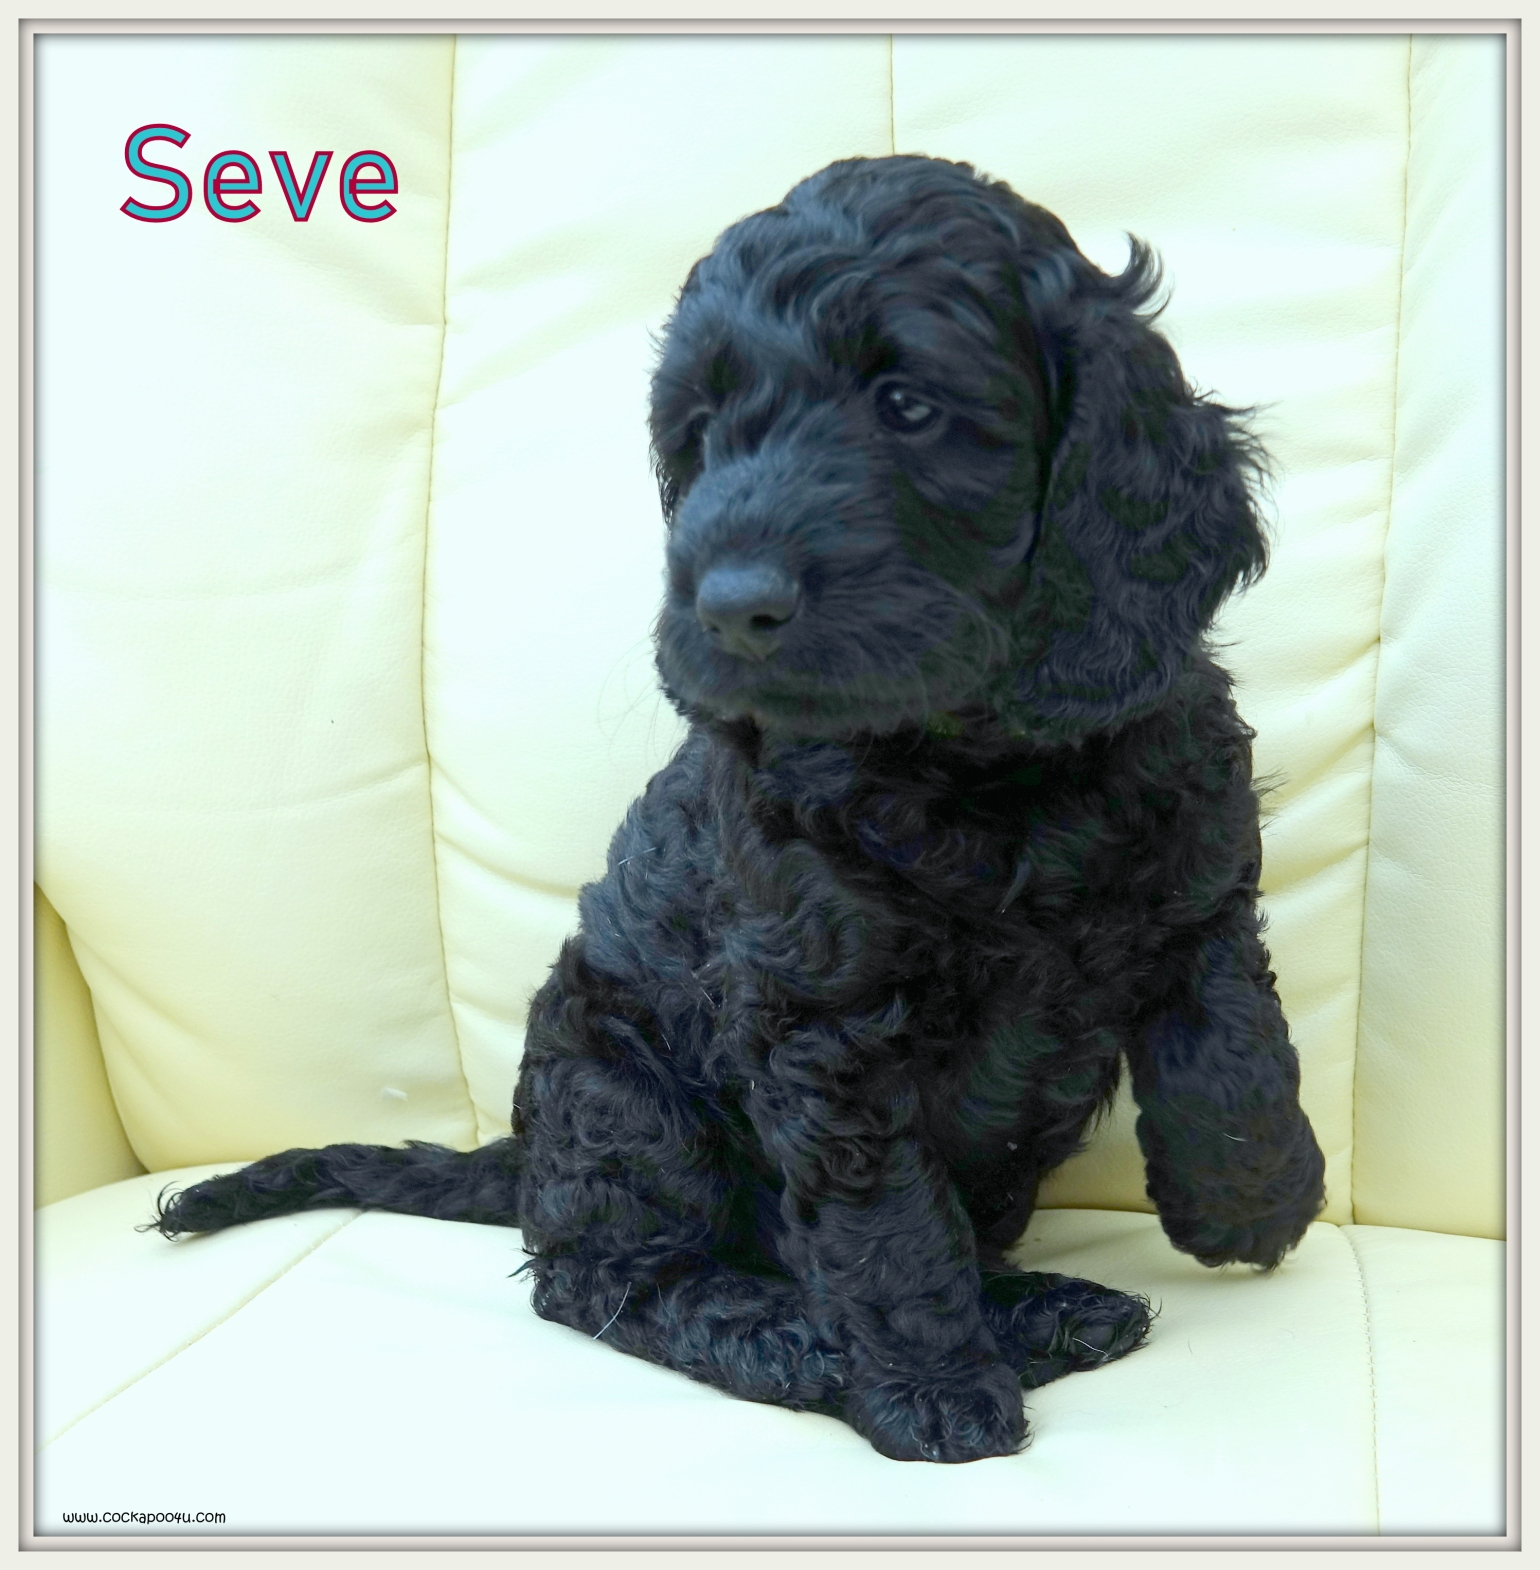 6. Seve Named.JPG